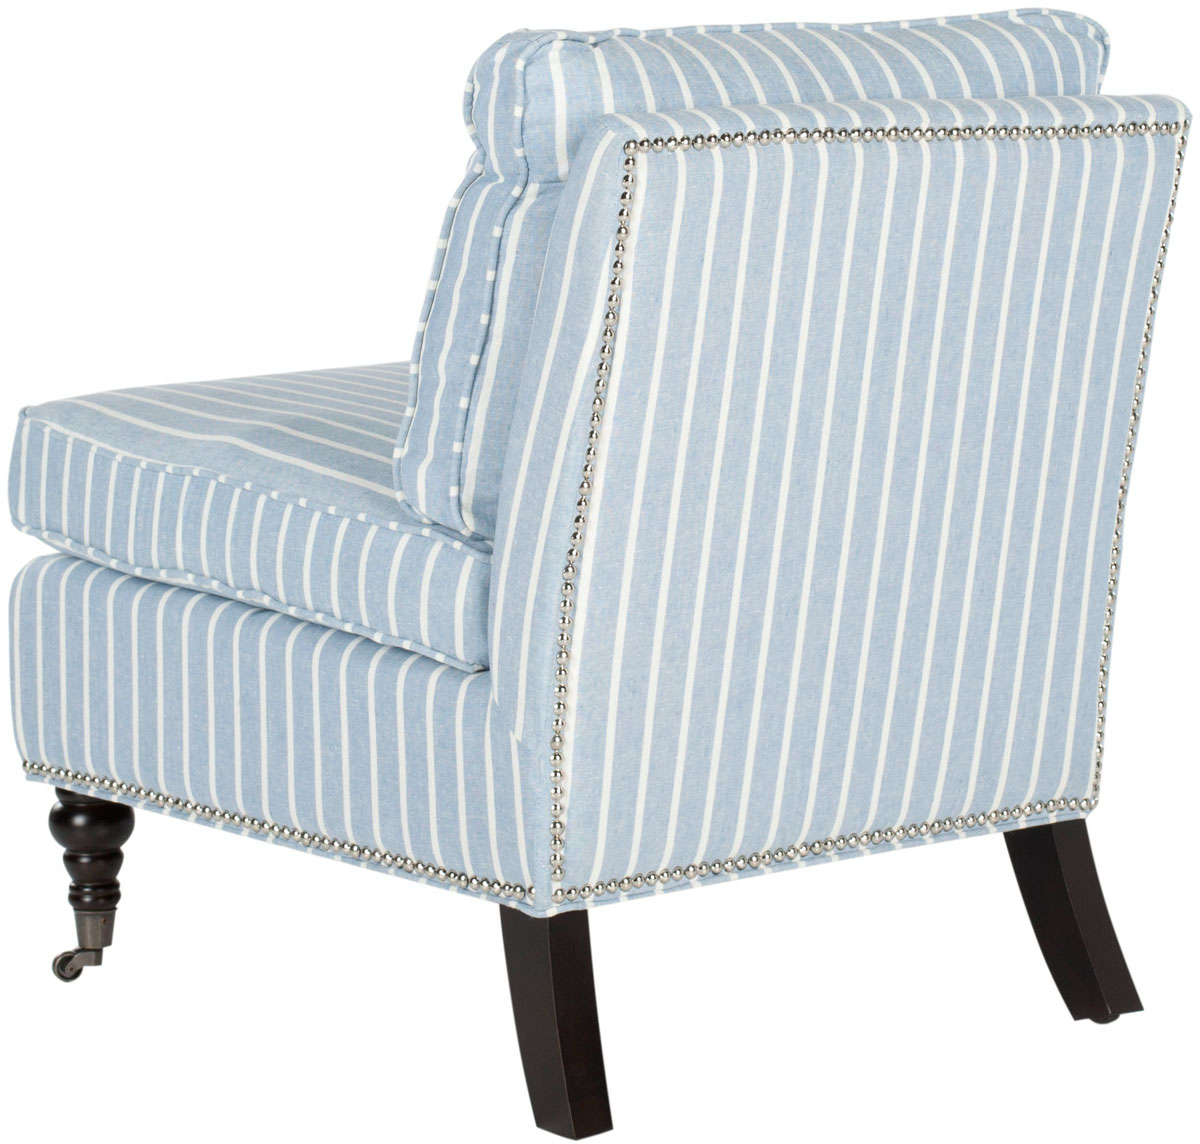 Blue And White Striped Chair Mcr4584g Accent Chairs Furniture By Safavieh